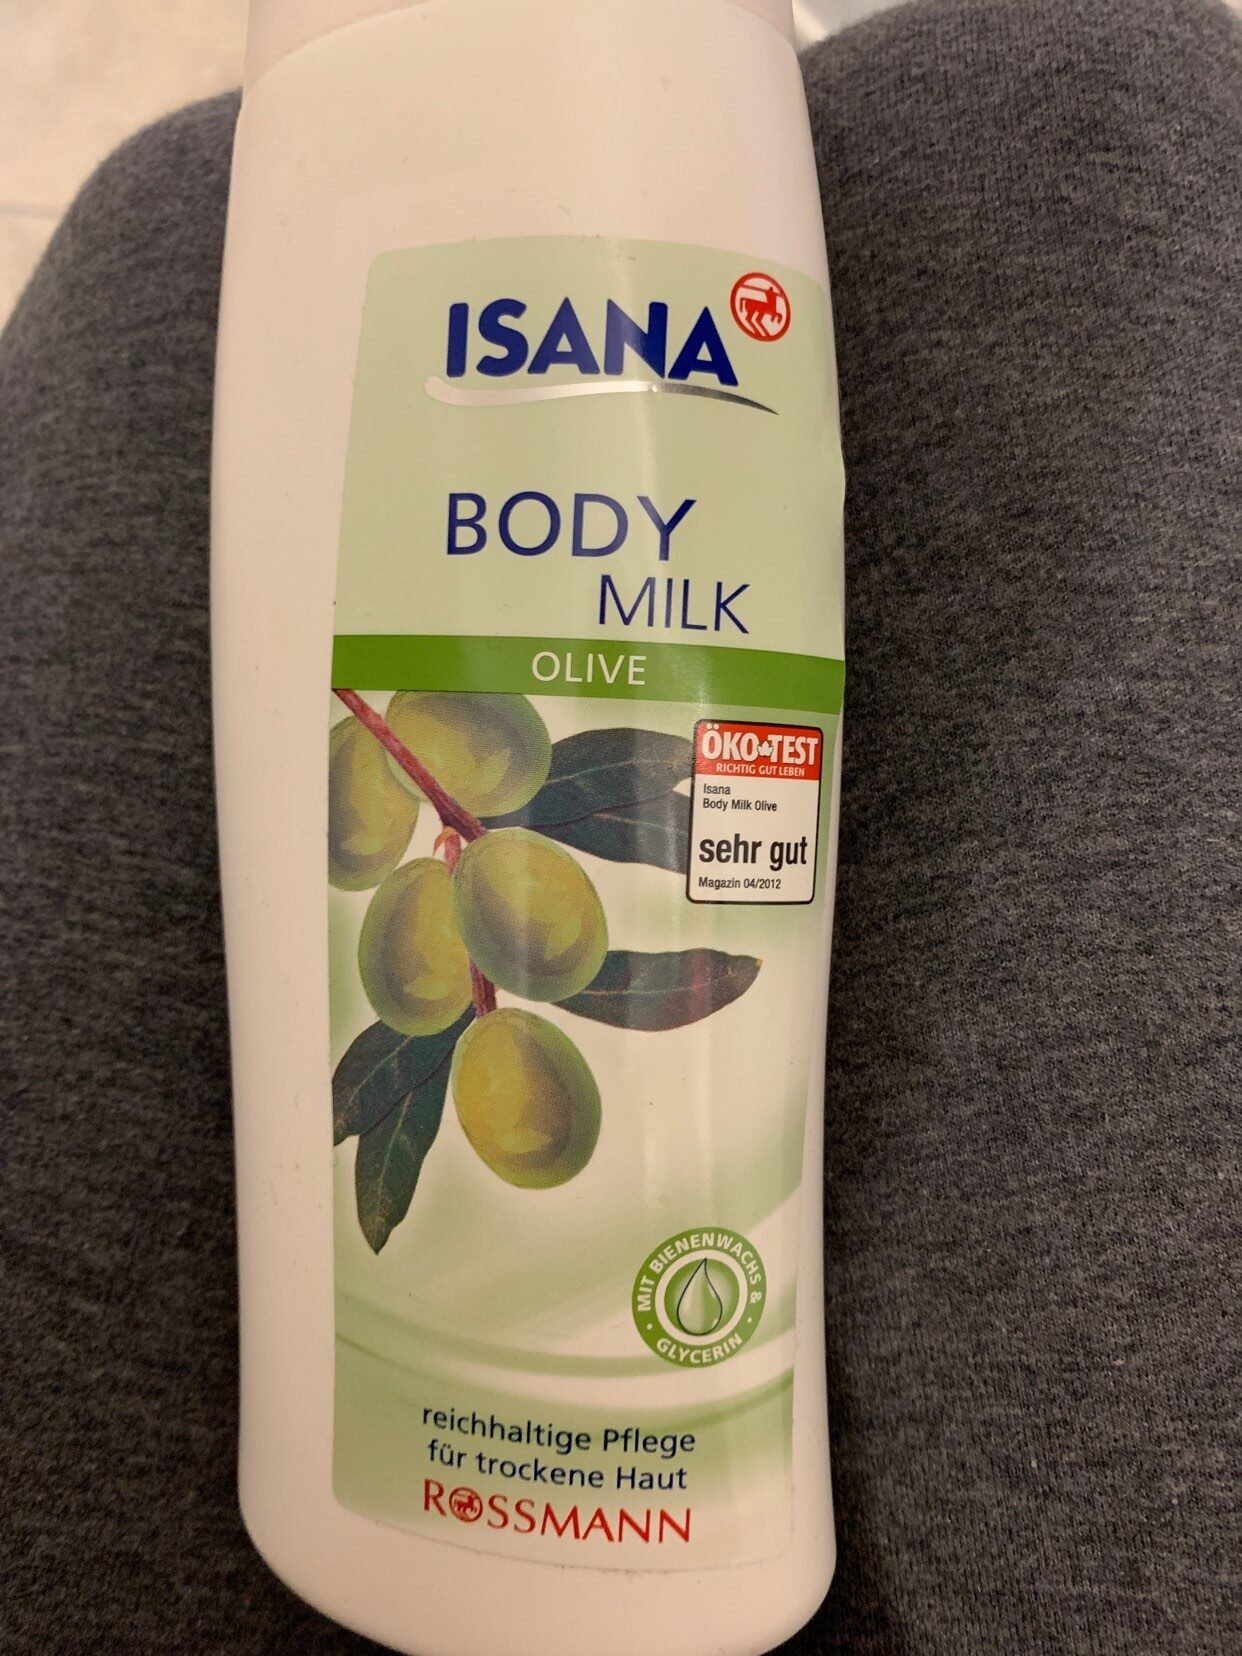 Isana Body Milk - Product - de